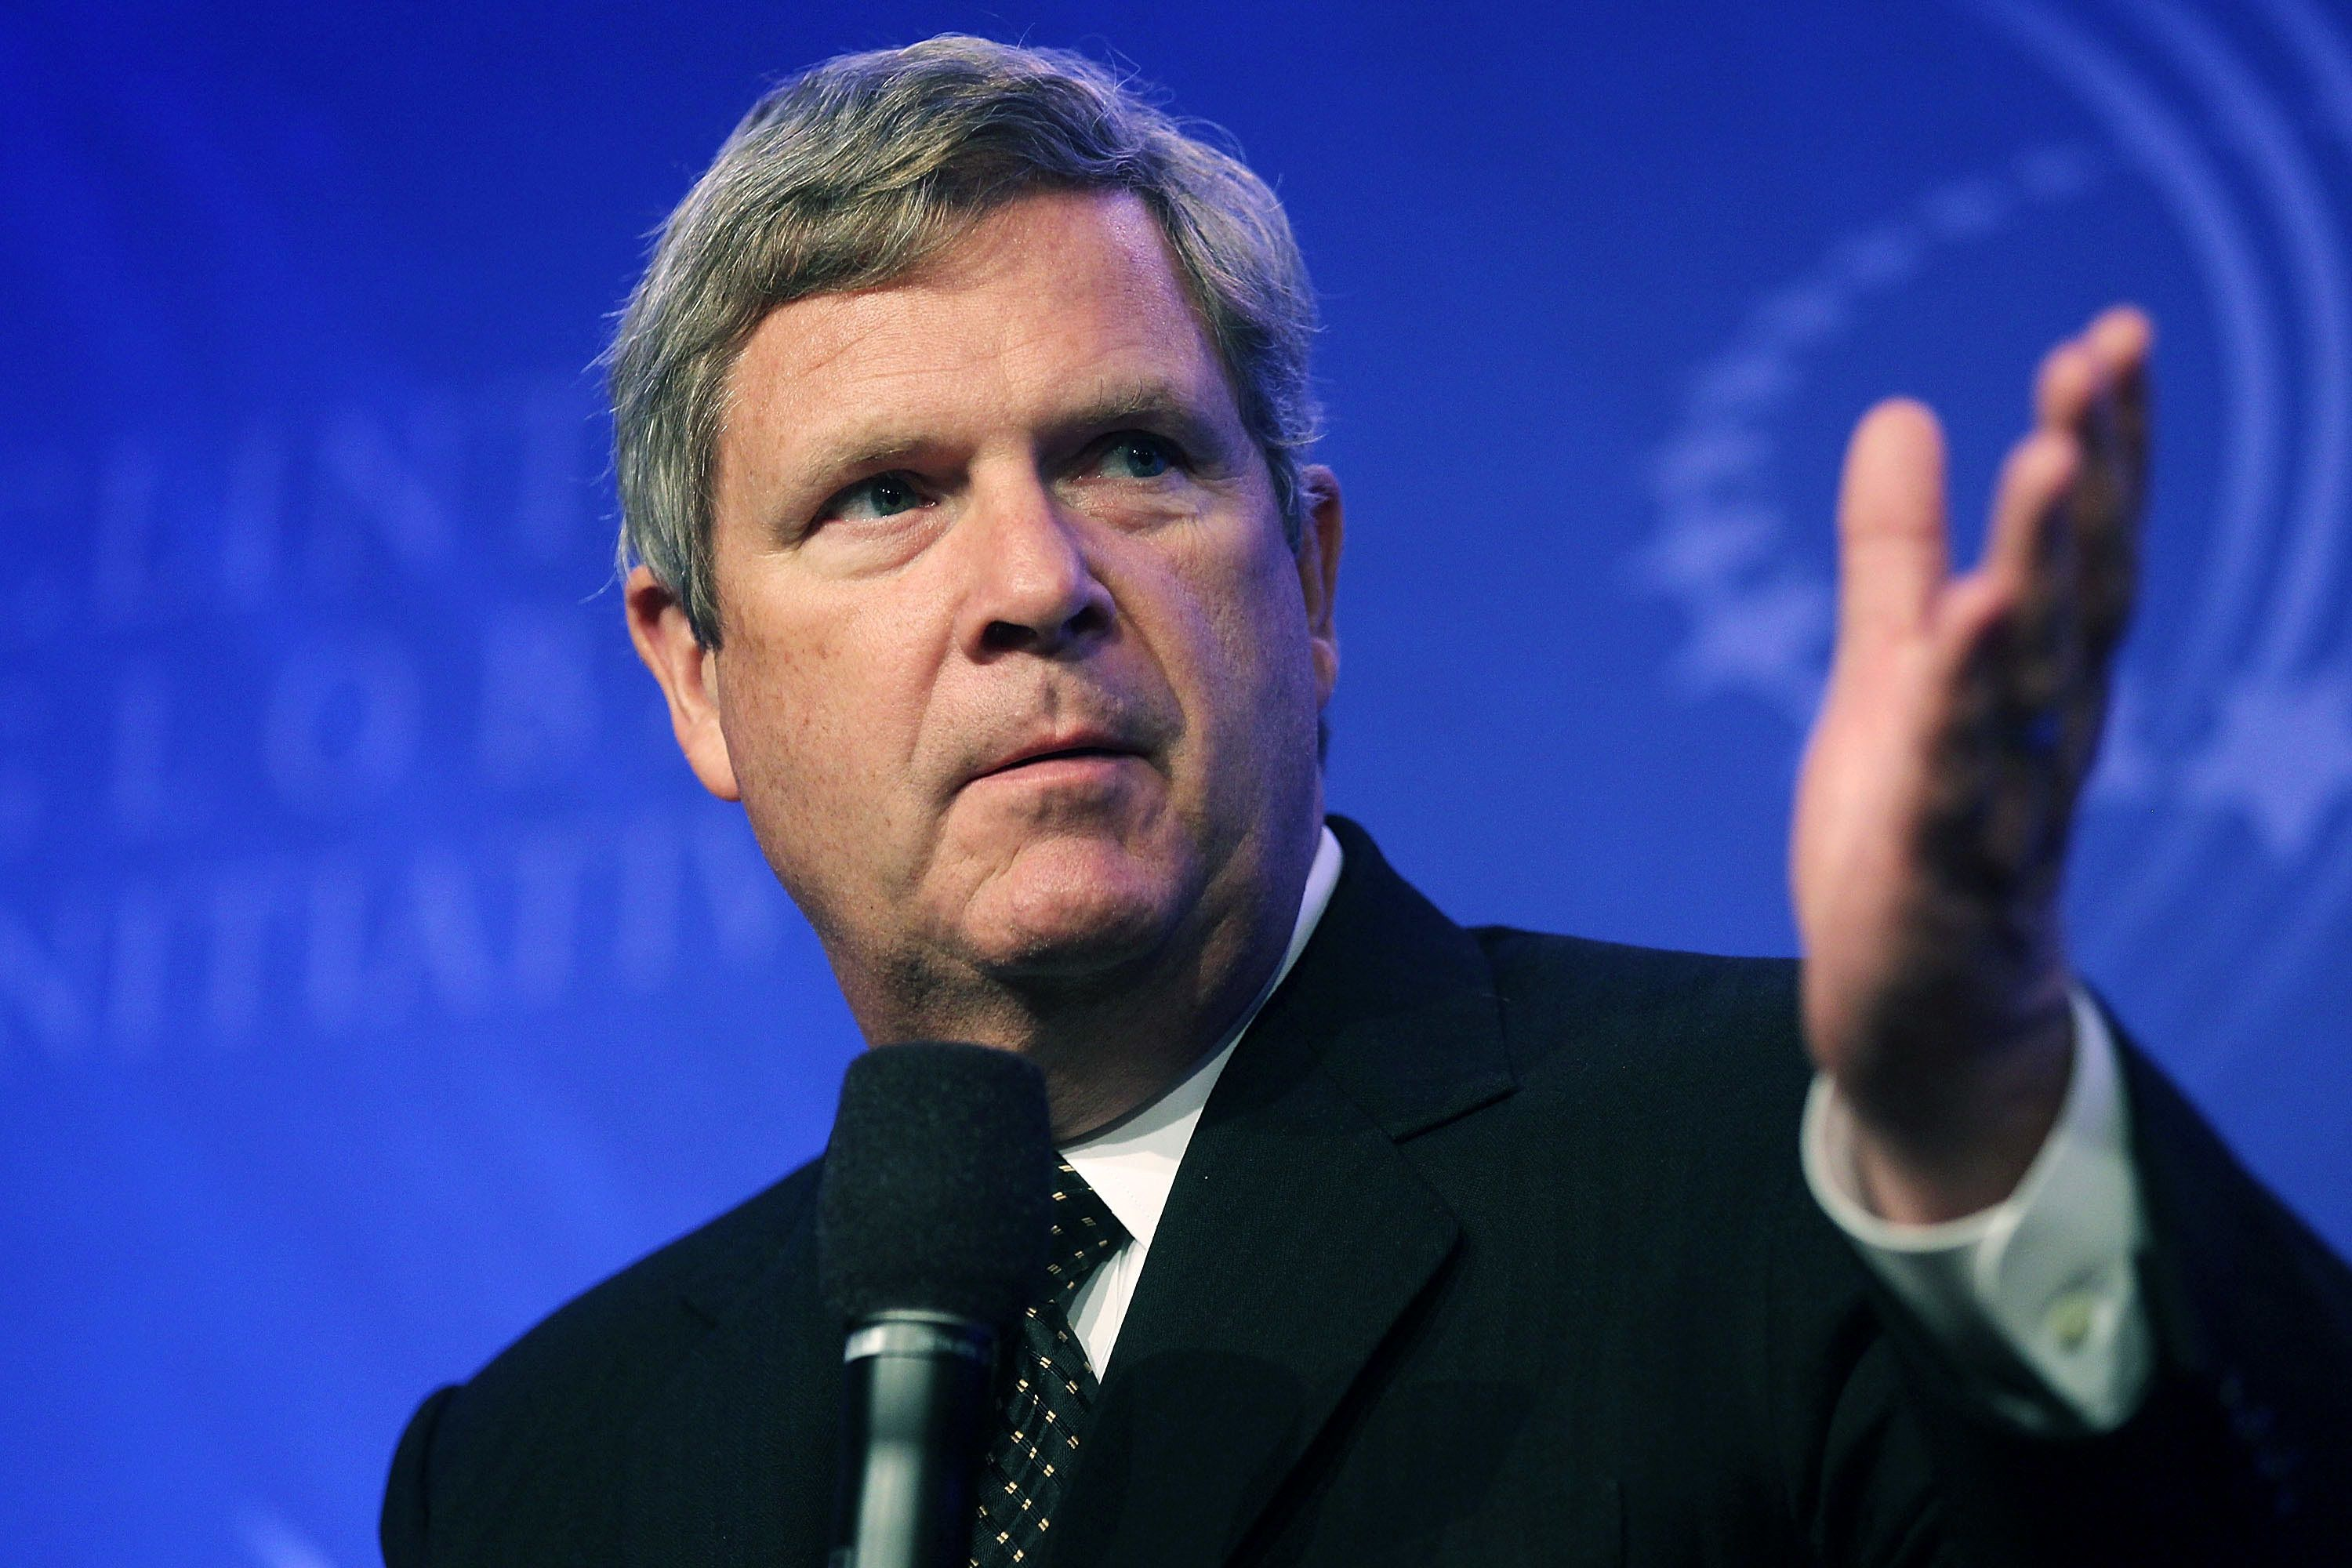 NEW YORK - SEPTEMBER 22:  Tom Vilsack, U.S. Secretary of Agriculture, speaks during the annual Clinton Global Initiative (CGI) September 22, 2010 in New York City. The sixth annual meeting of the CGI gathers prominent individuals in politics, business, science, academics, religion and entertainment to discuss global issues such as climate change and the reconstruction of Haiti. The event, founded by former U.S. President Bill Clinton after he left office, is held the same week as the General Assembly at the United Nations, when most world leaders are in New York City.  (Photo by Mario Tama/Getty Images)